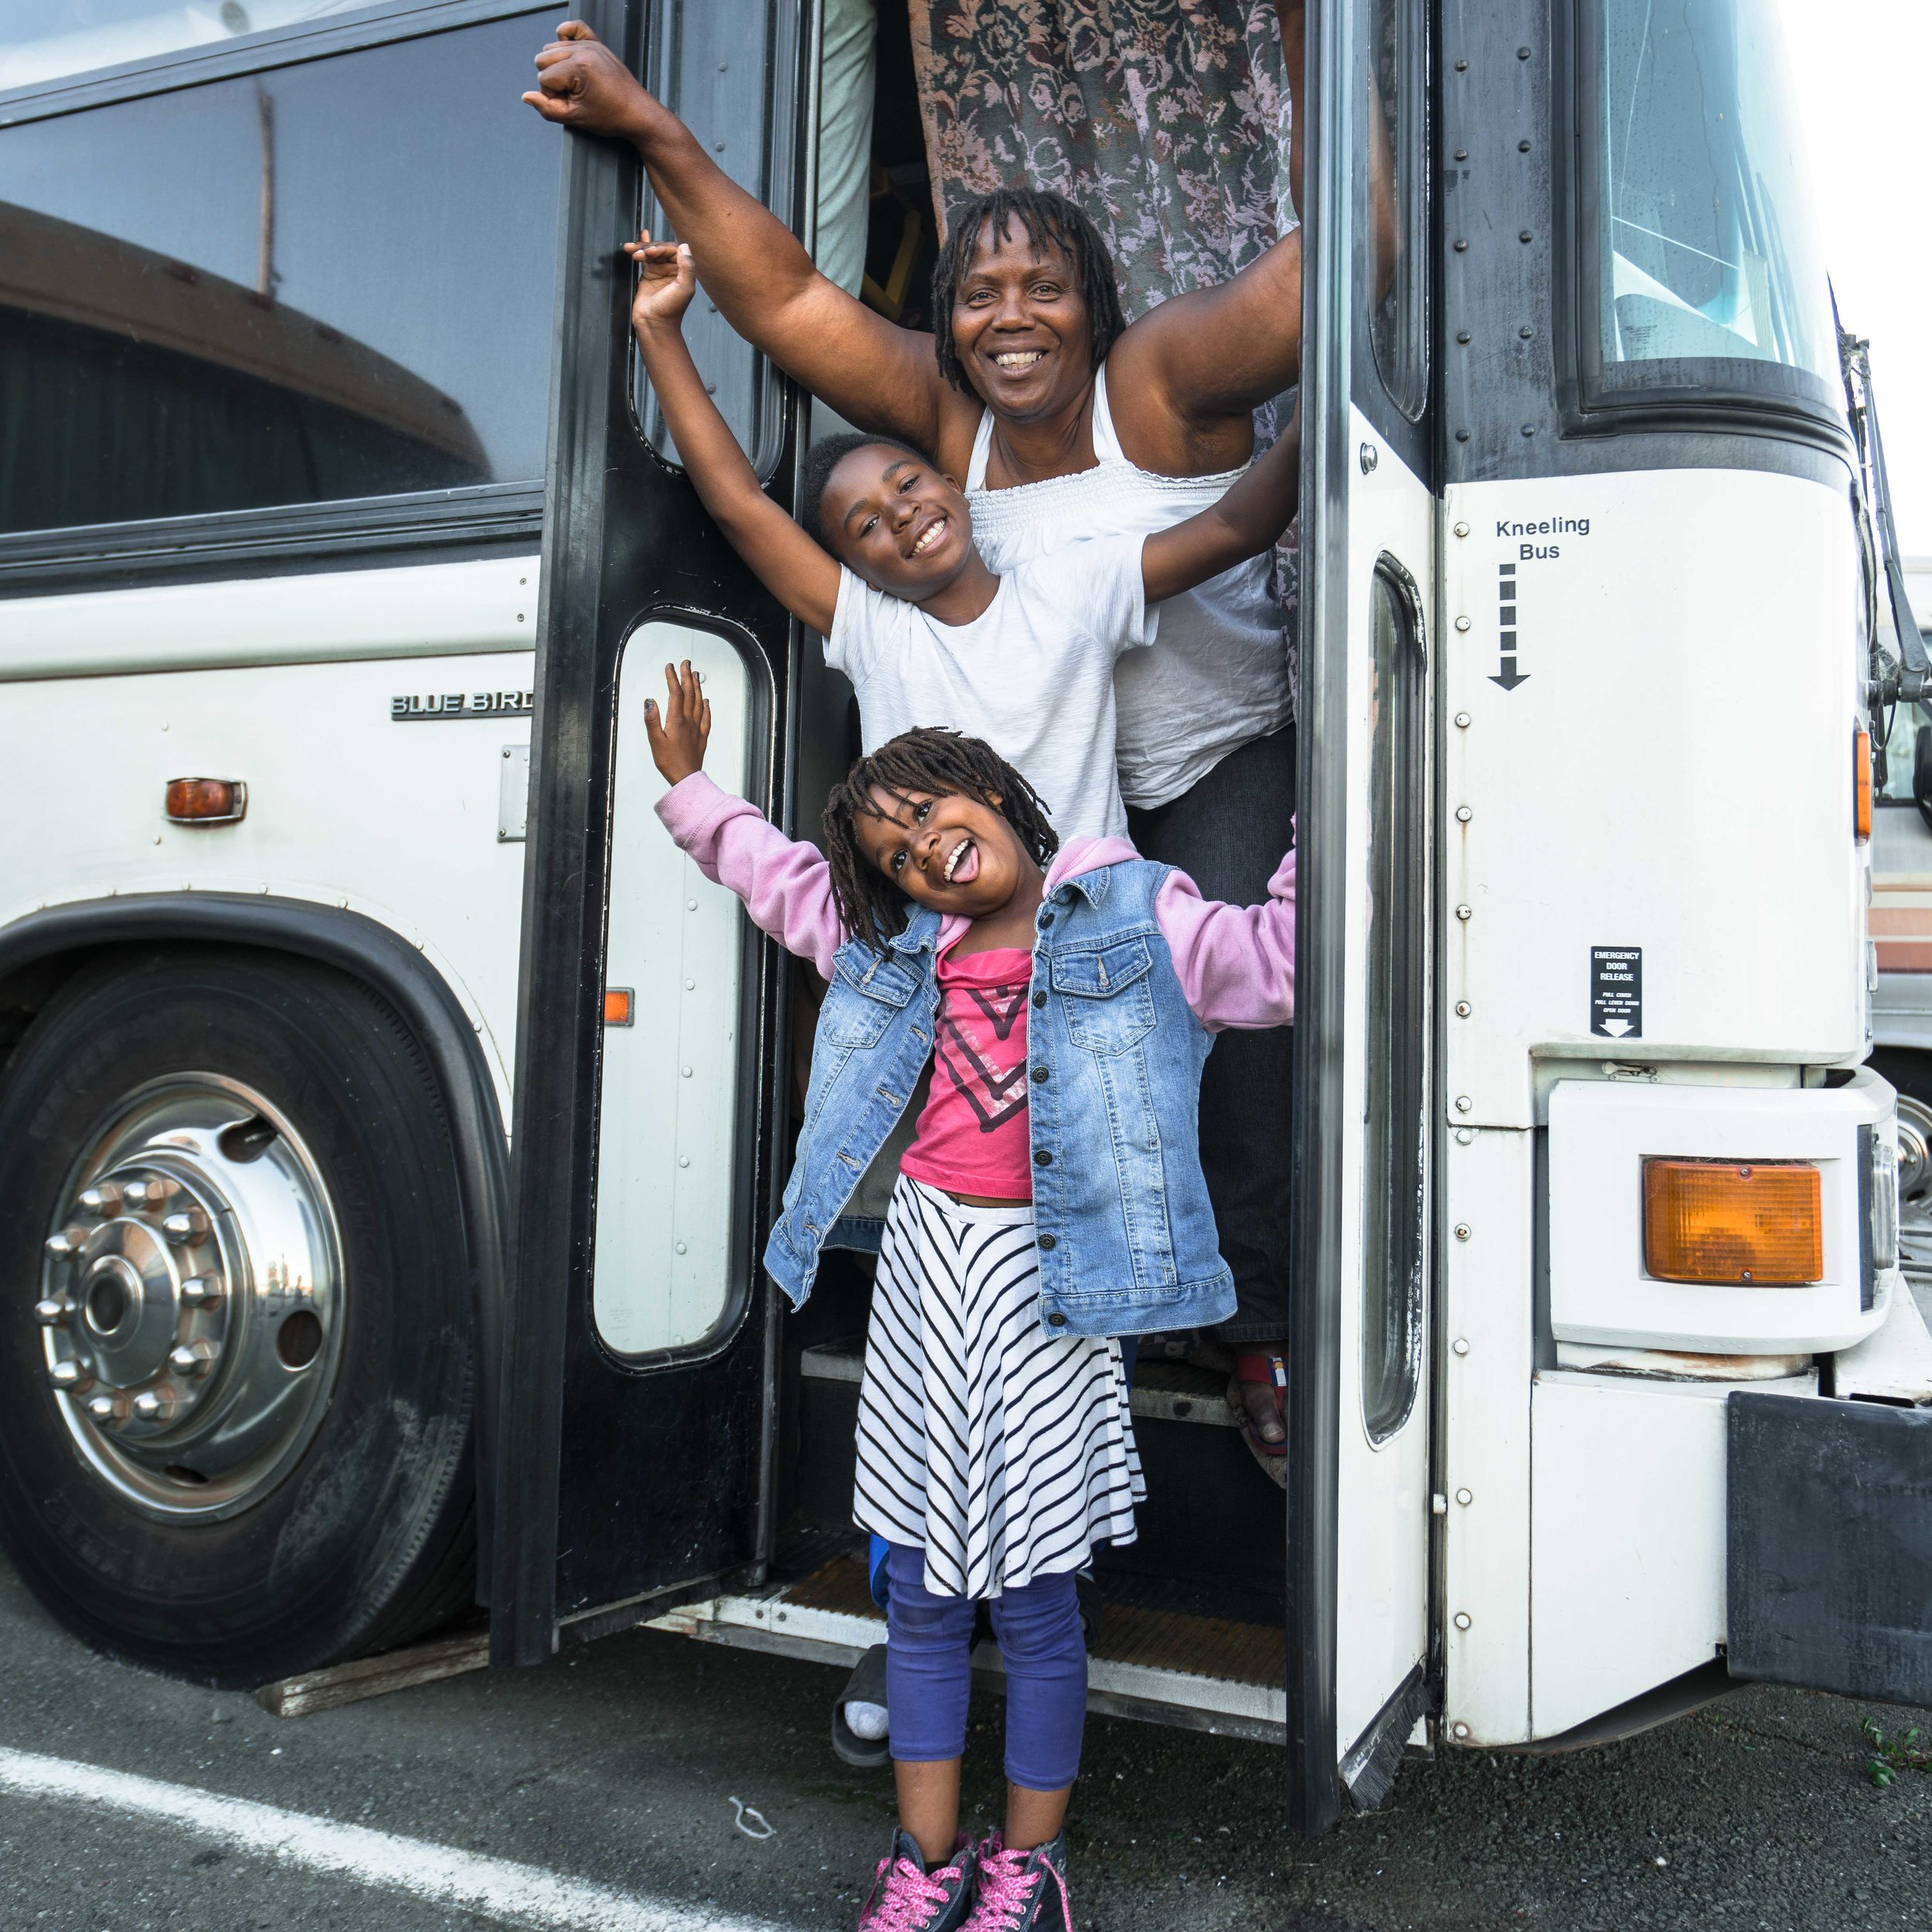 Constance and her children, David and Miracle, looking forward to turning their bus into a home.